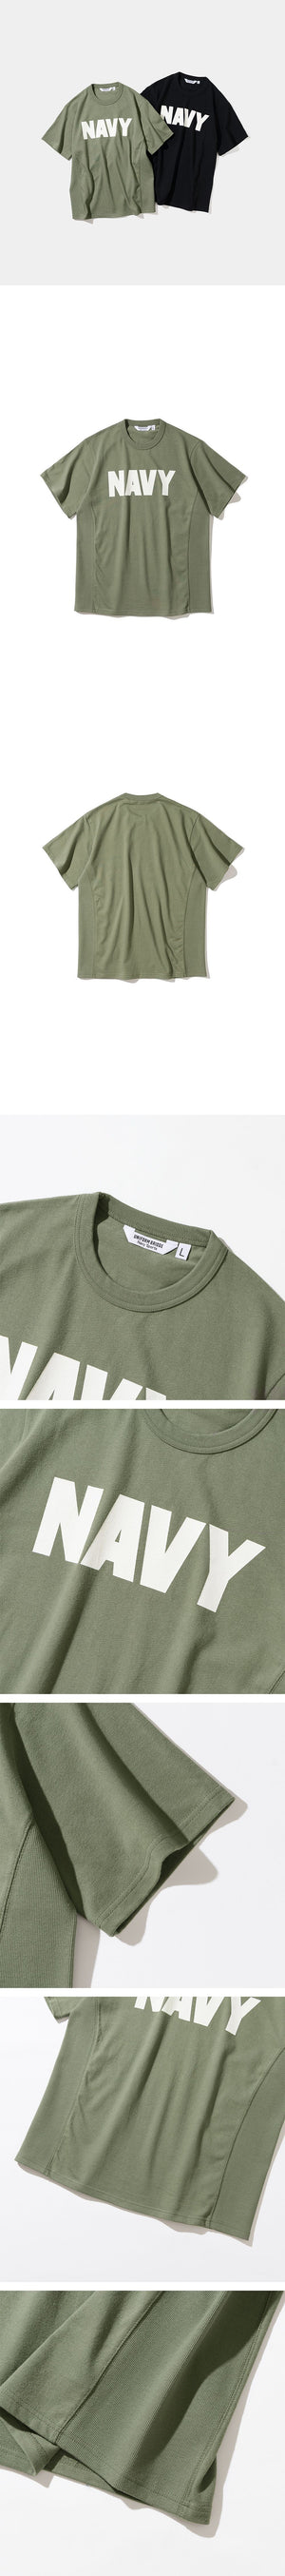 Navy Training Tee - Sage Green